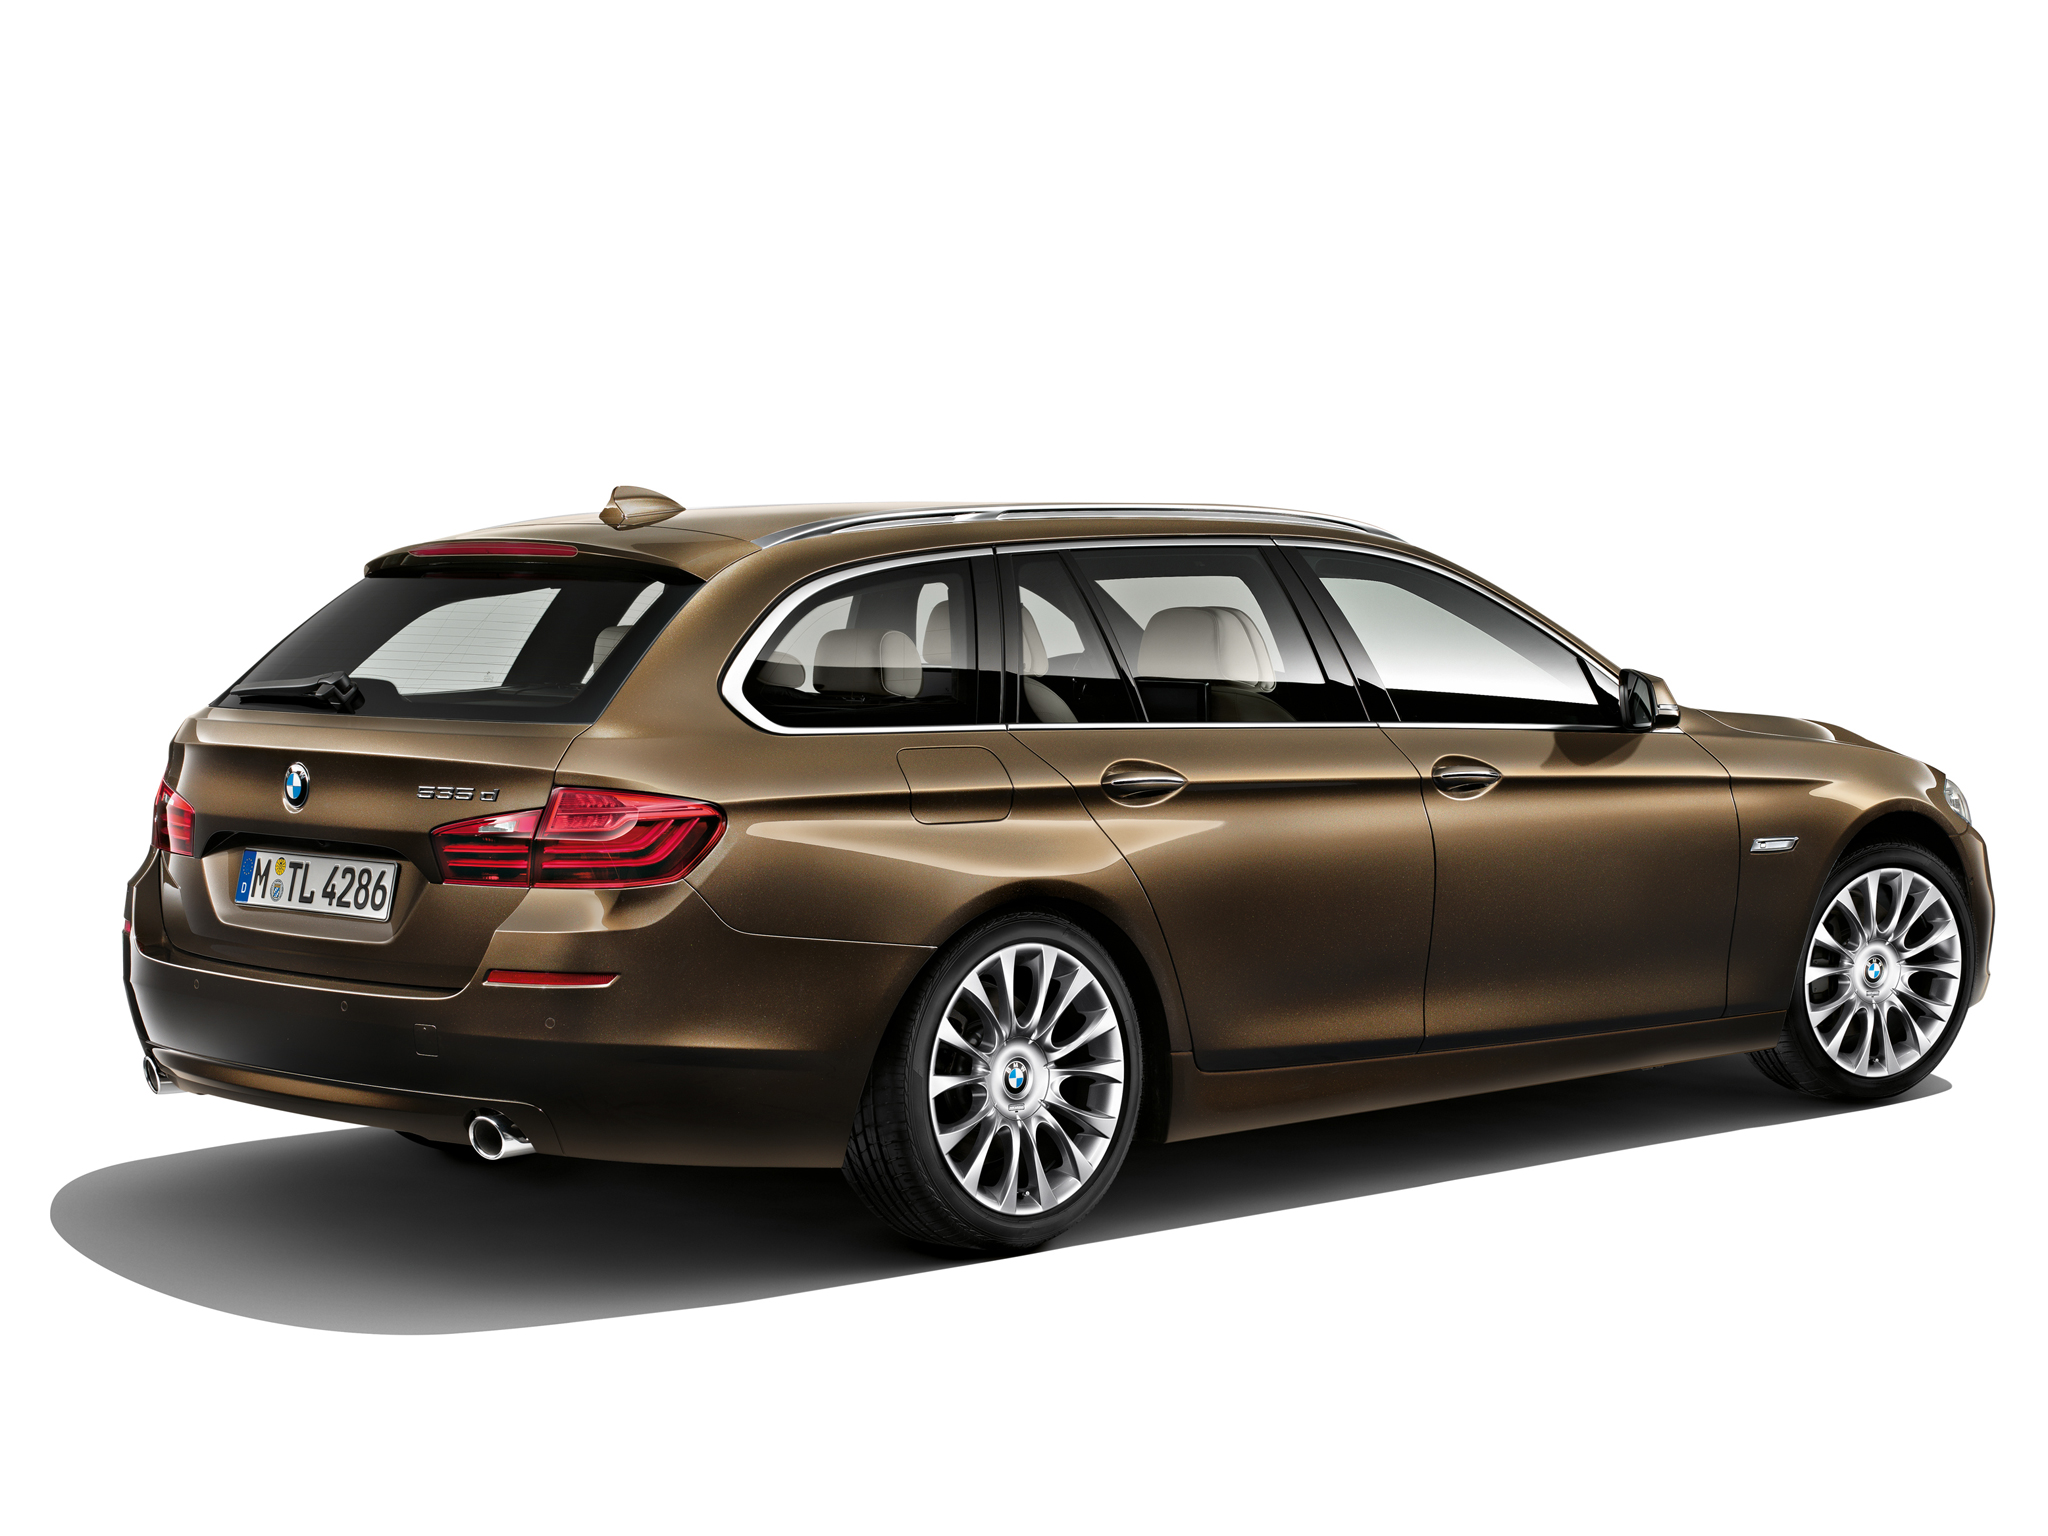 BMW 5 series 535d 2013 photo - 9